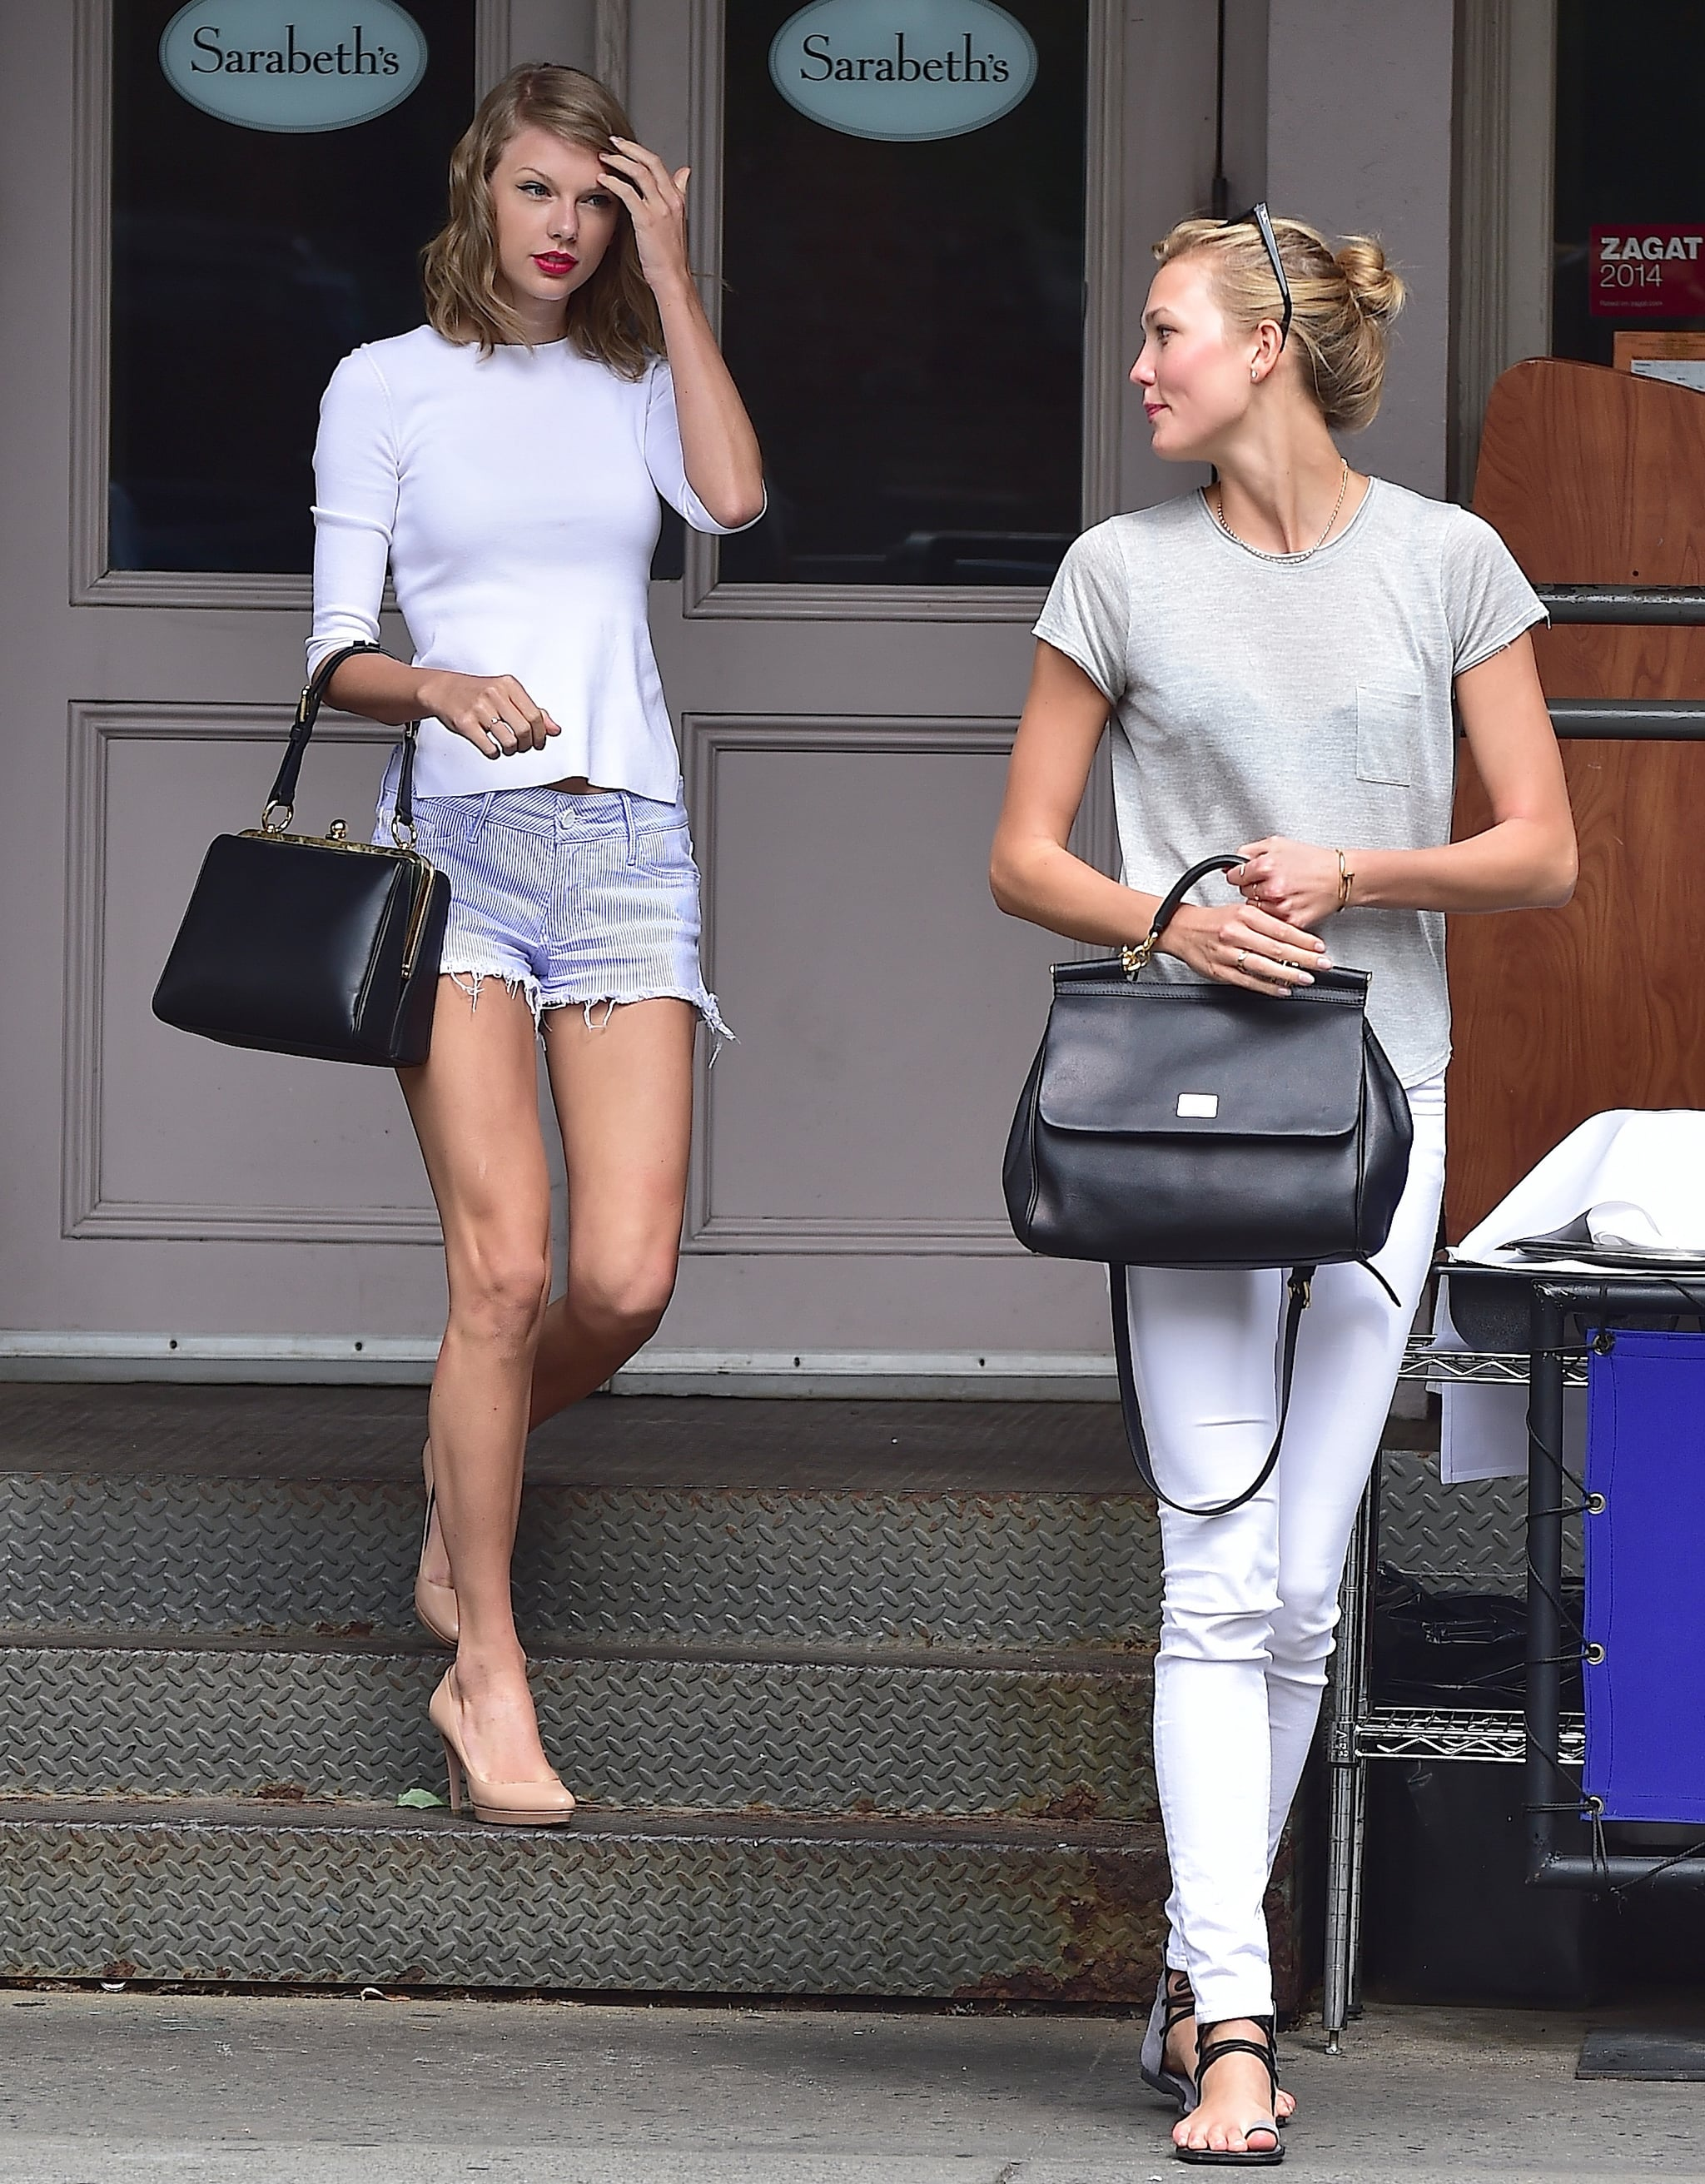 It's not like we haven't seen Taylor and Karlie together before, but we're fawning over this particular sighting because, well, they're both carrying Dolce & Gabbana satchels — the Agata and the Sicily, respectively. Not only do each of the bags complement the girls' outfits, but they also jibe with Karlie's and Taylor's distinctive tastes. So decide which way you'd go — classic and sharp like Taylor or laid-back with a boho touch like Karlie — then scroll down to see how you can pull off both looks. Here's to all the fashion friends out there. Source: Getty / Alo Ceballos